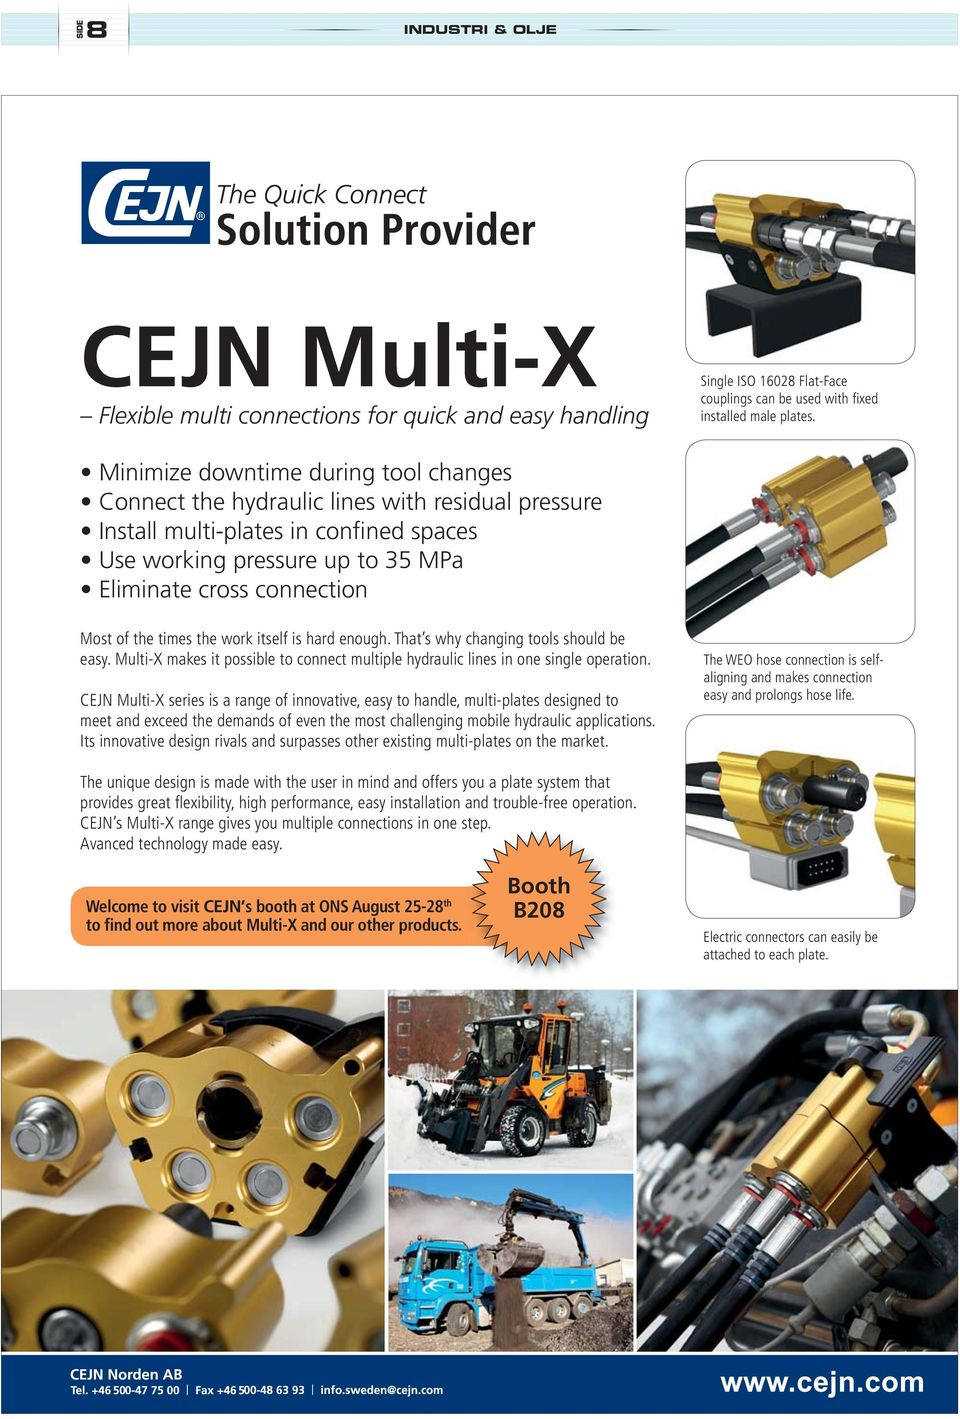 CEJN Multi-X series is a range of innovative, easy to handle, multi-plates designed to meet and exceed the demands of even the most challenging mobile hydraulic applications.